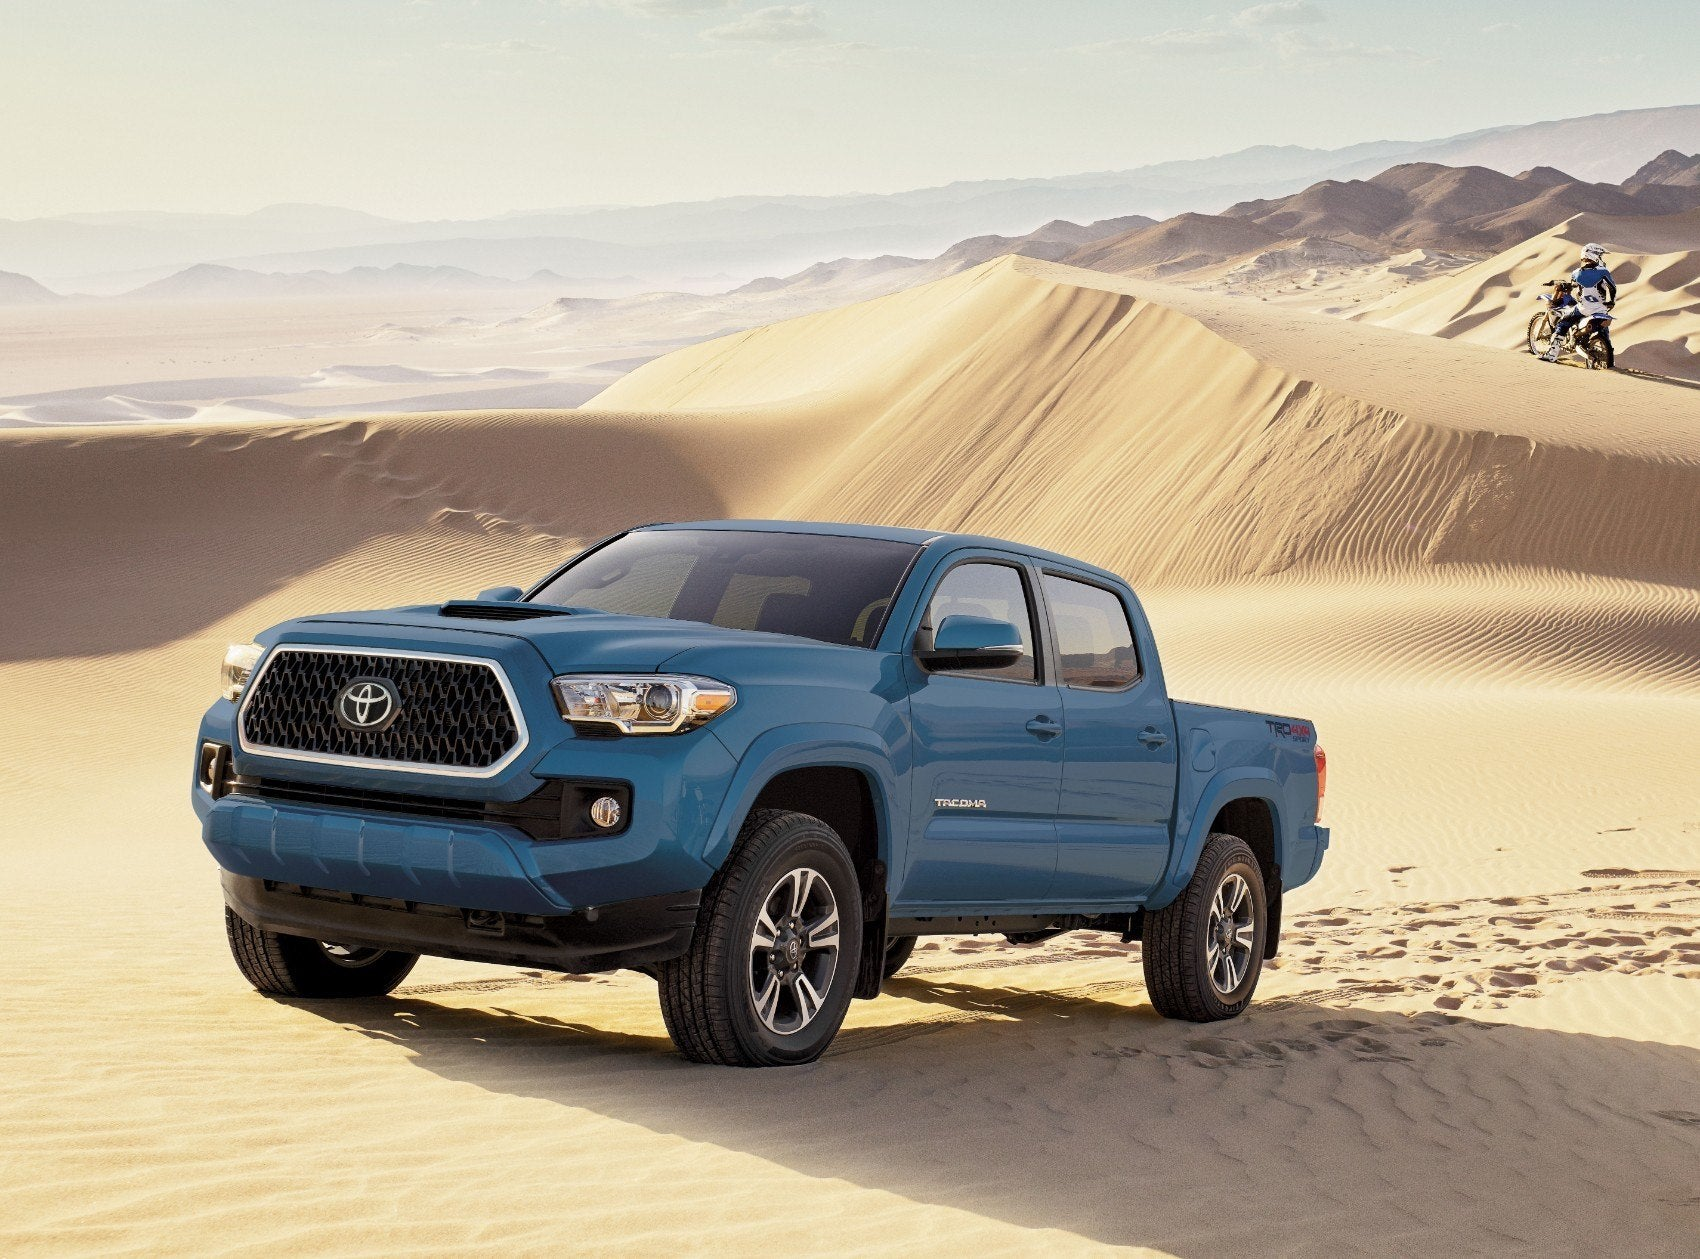 2019 Toyota Tacoma Trd Pro Review Perfect For The Weekend